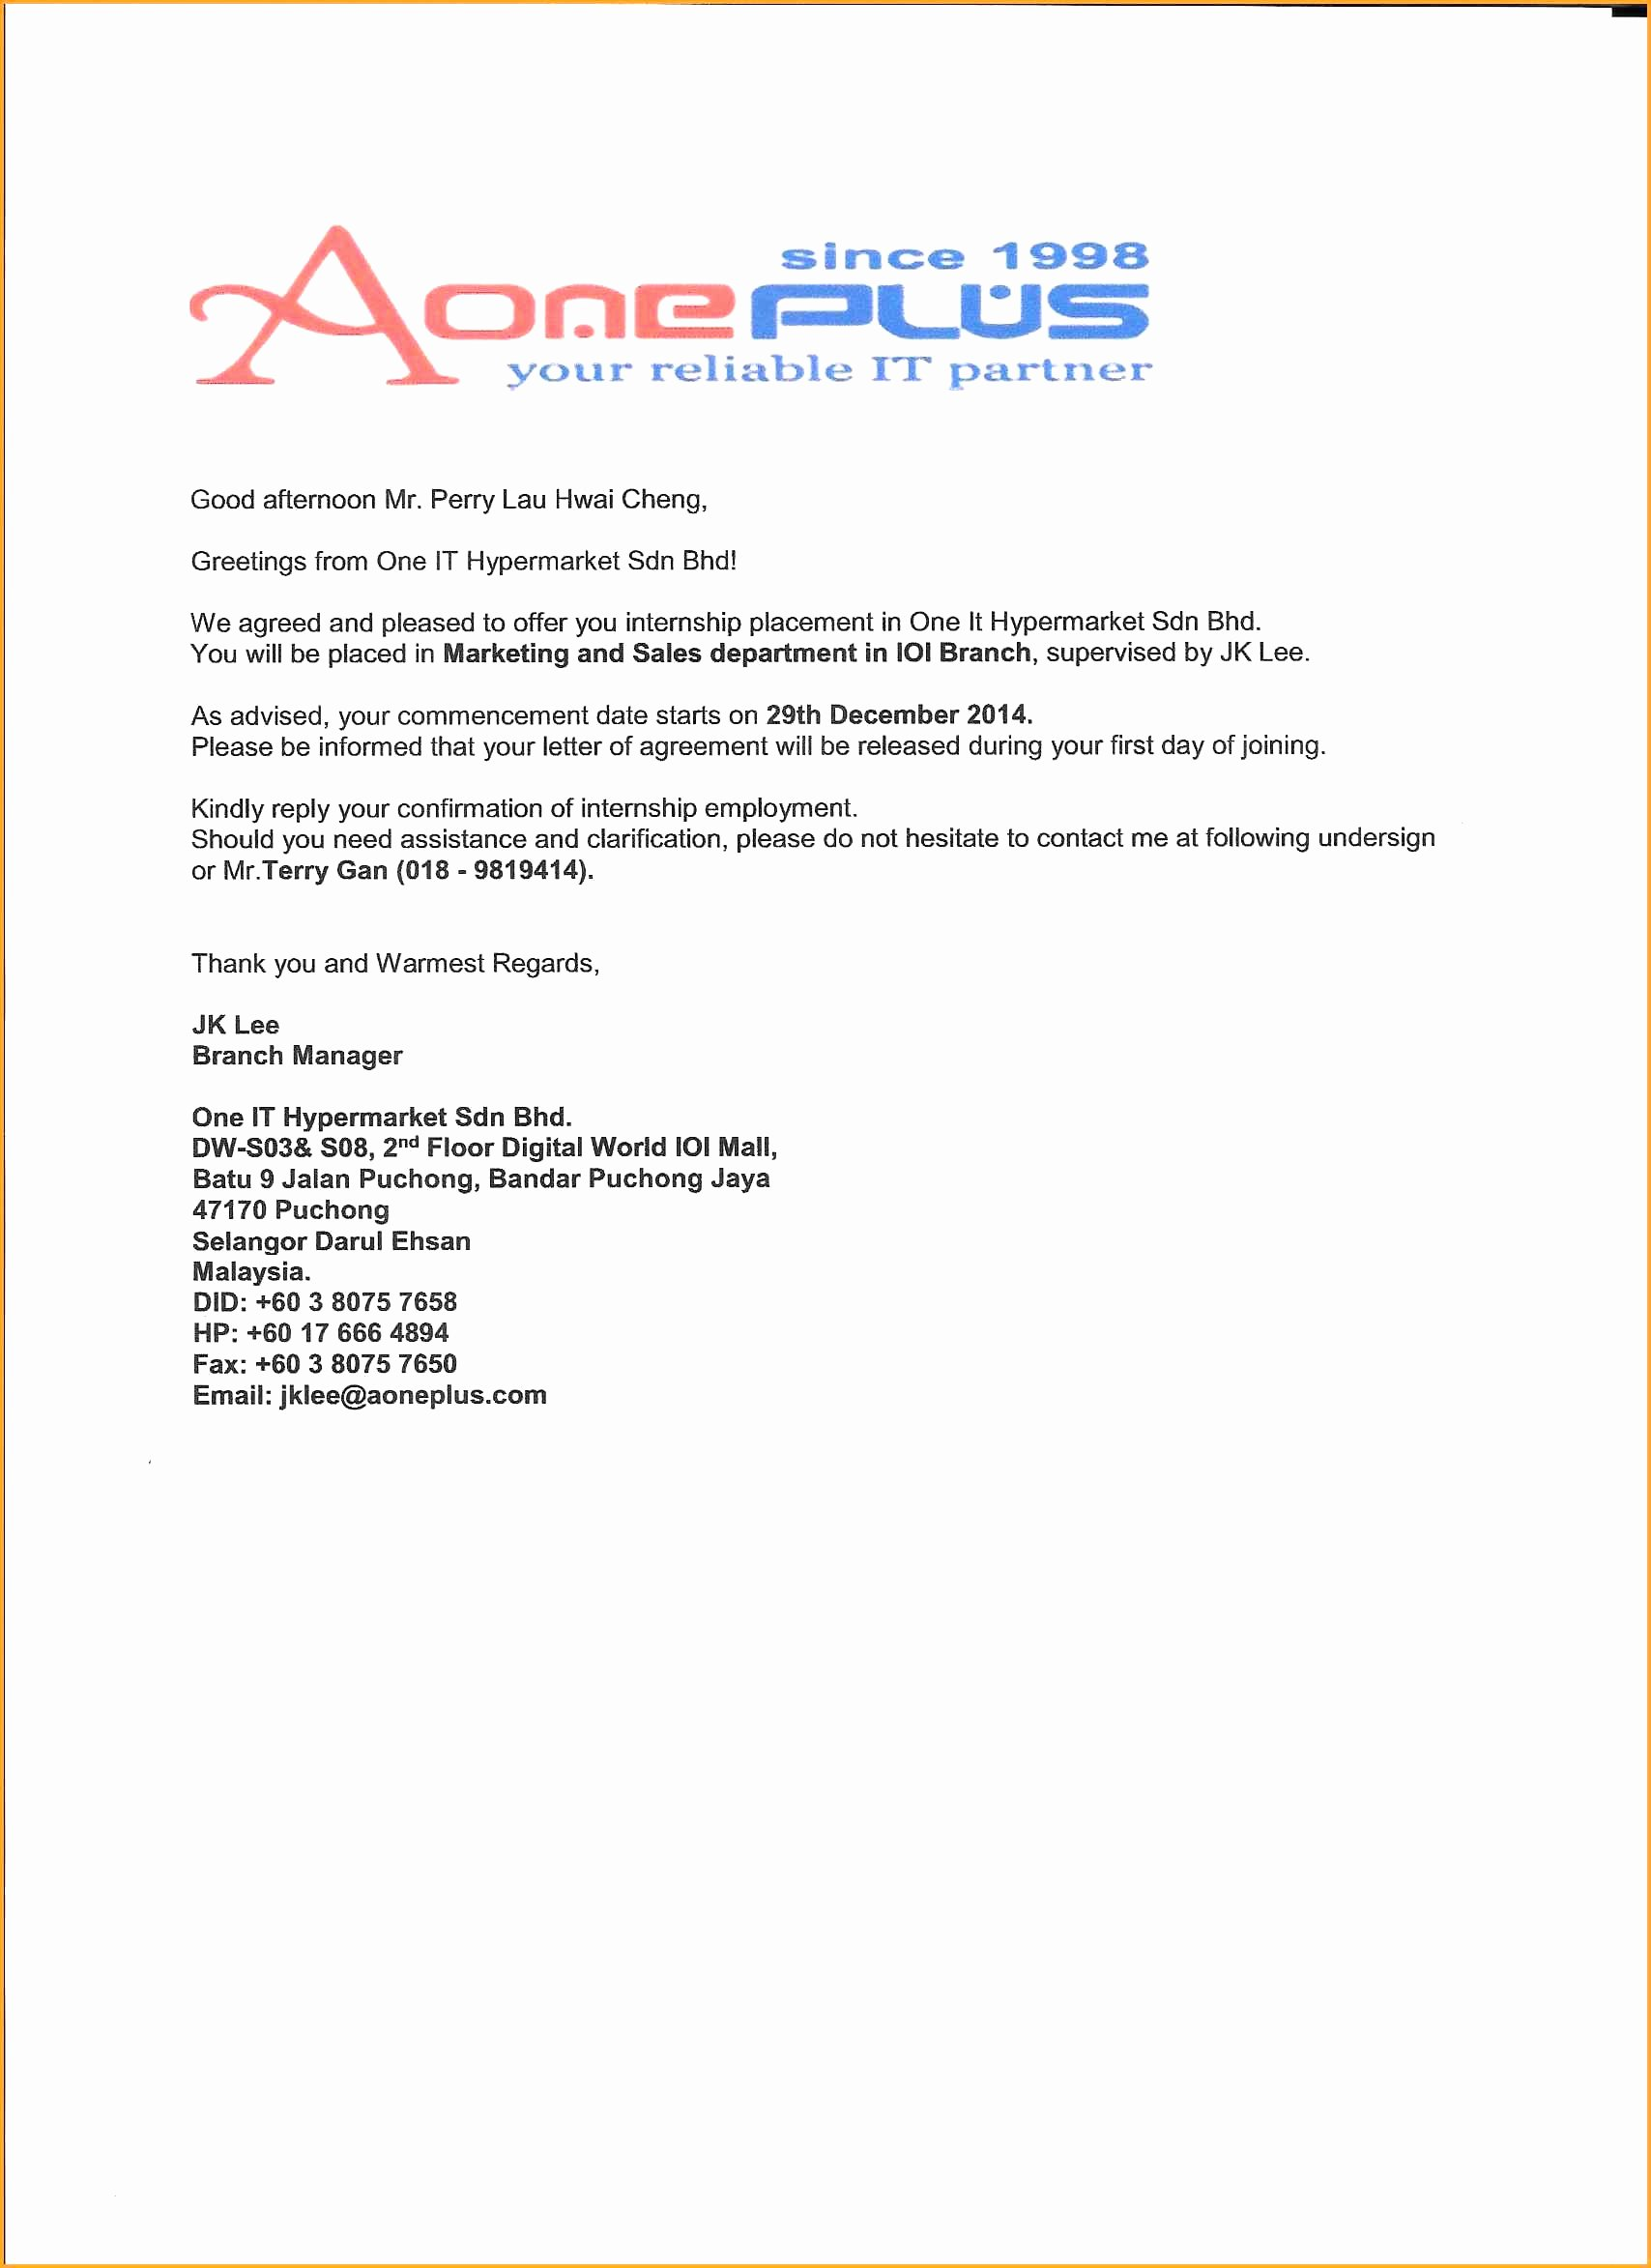 Internship Offer Letter Template Fresh 15 Internship Letter From Pany